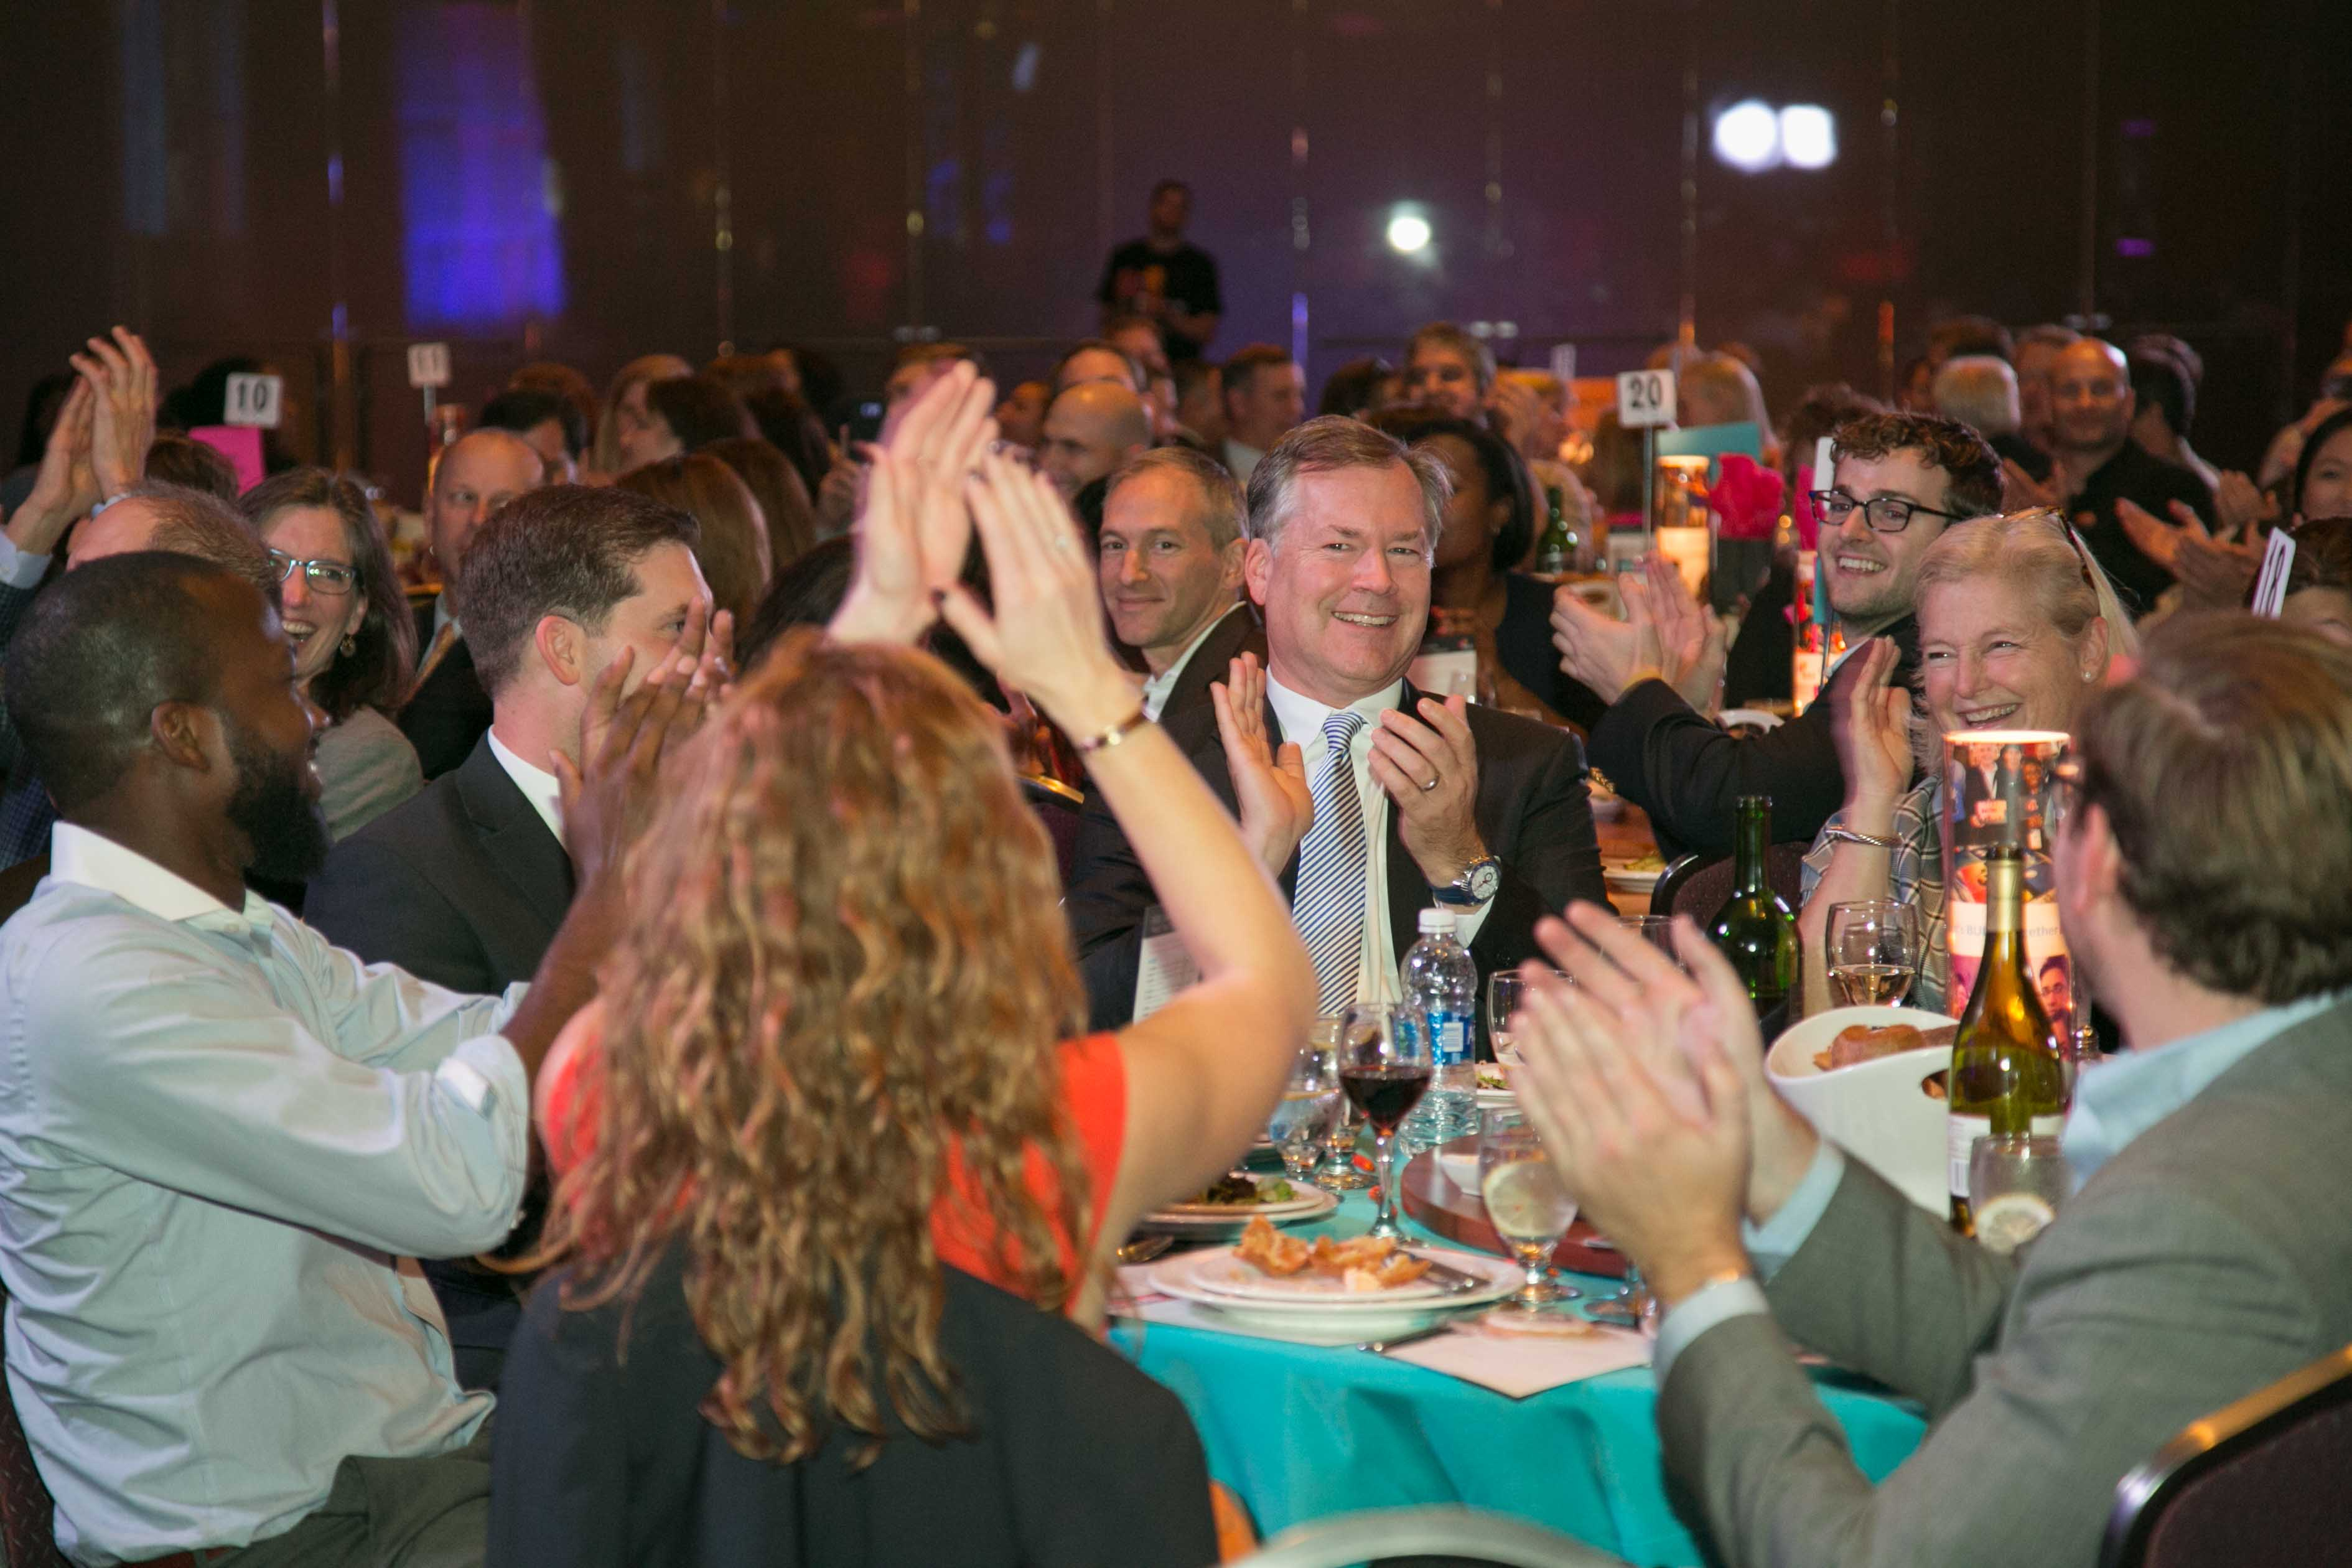 Guests Applauding at Build Fest Boston Fundraising Gala 2016